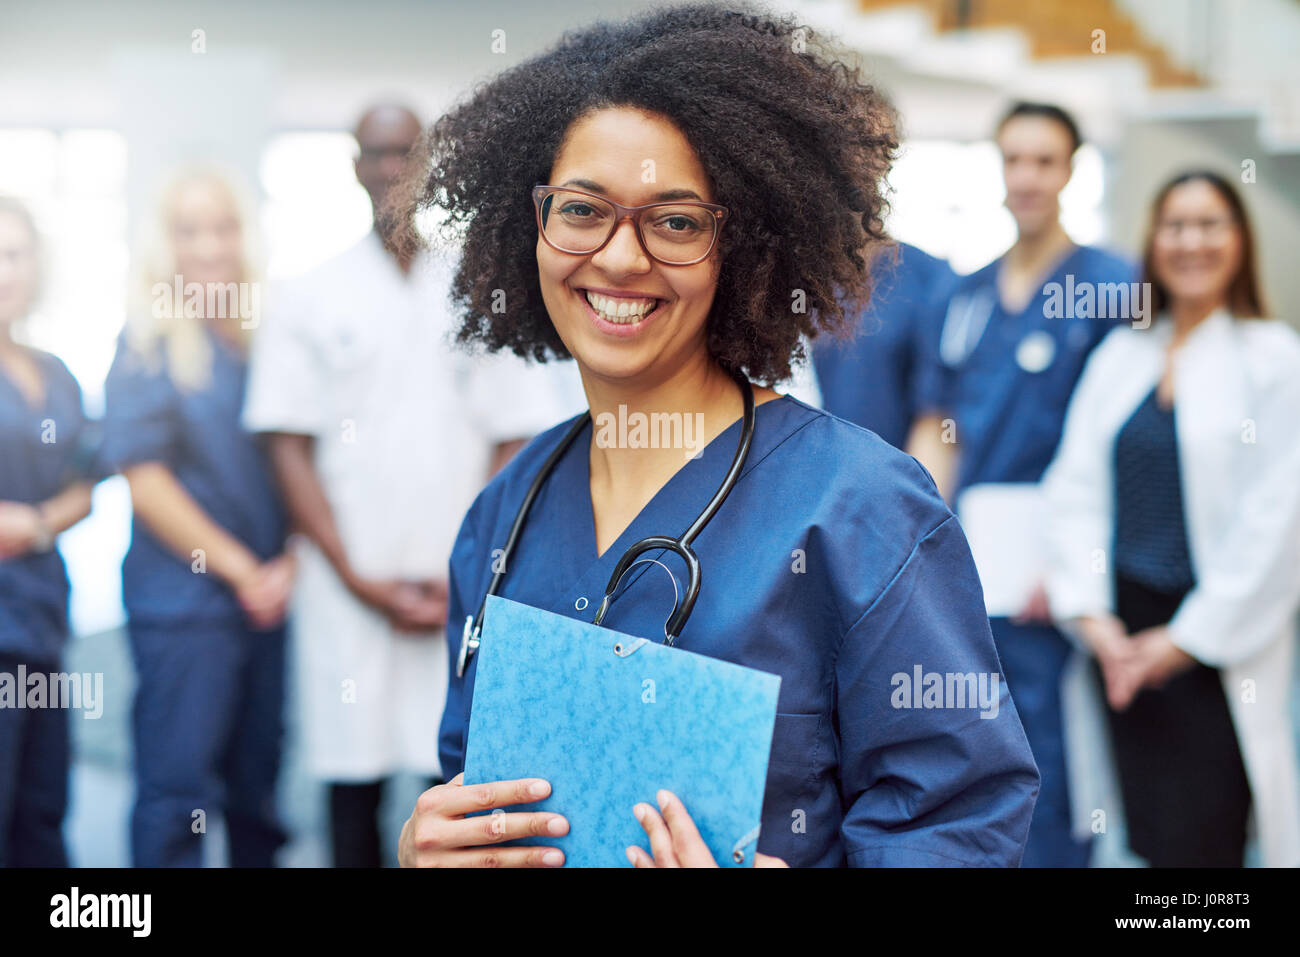 Smiling young black female doctor standing in front of medical team at hospital Stock Photo